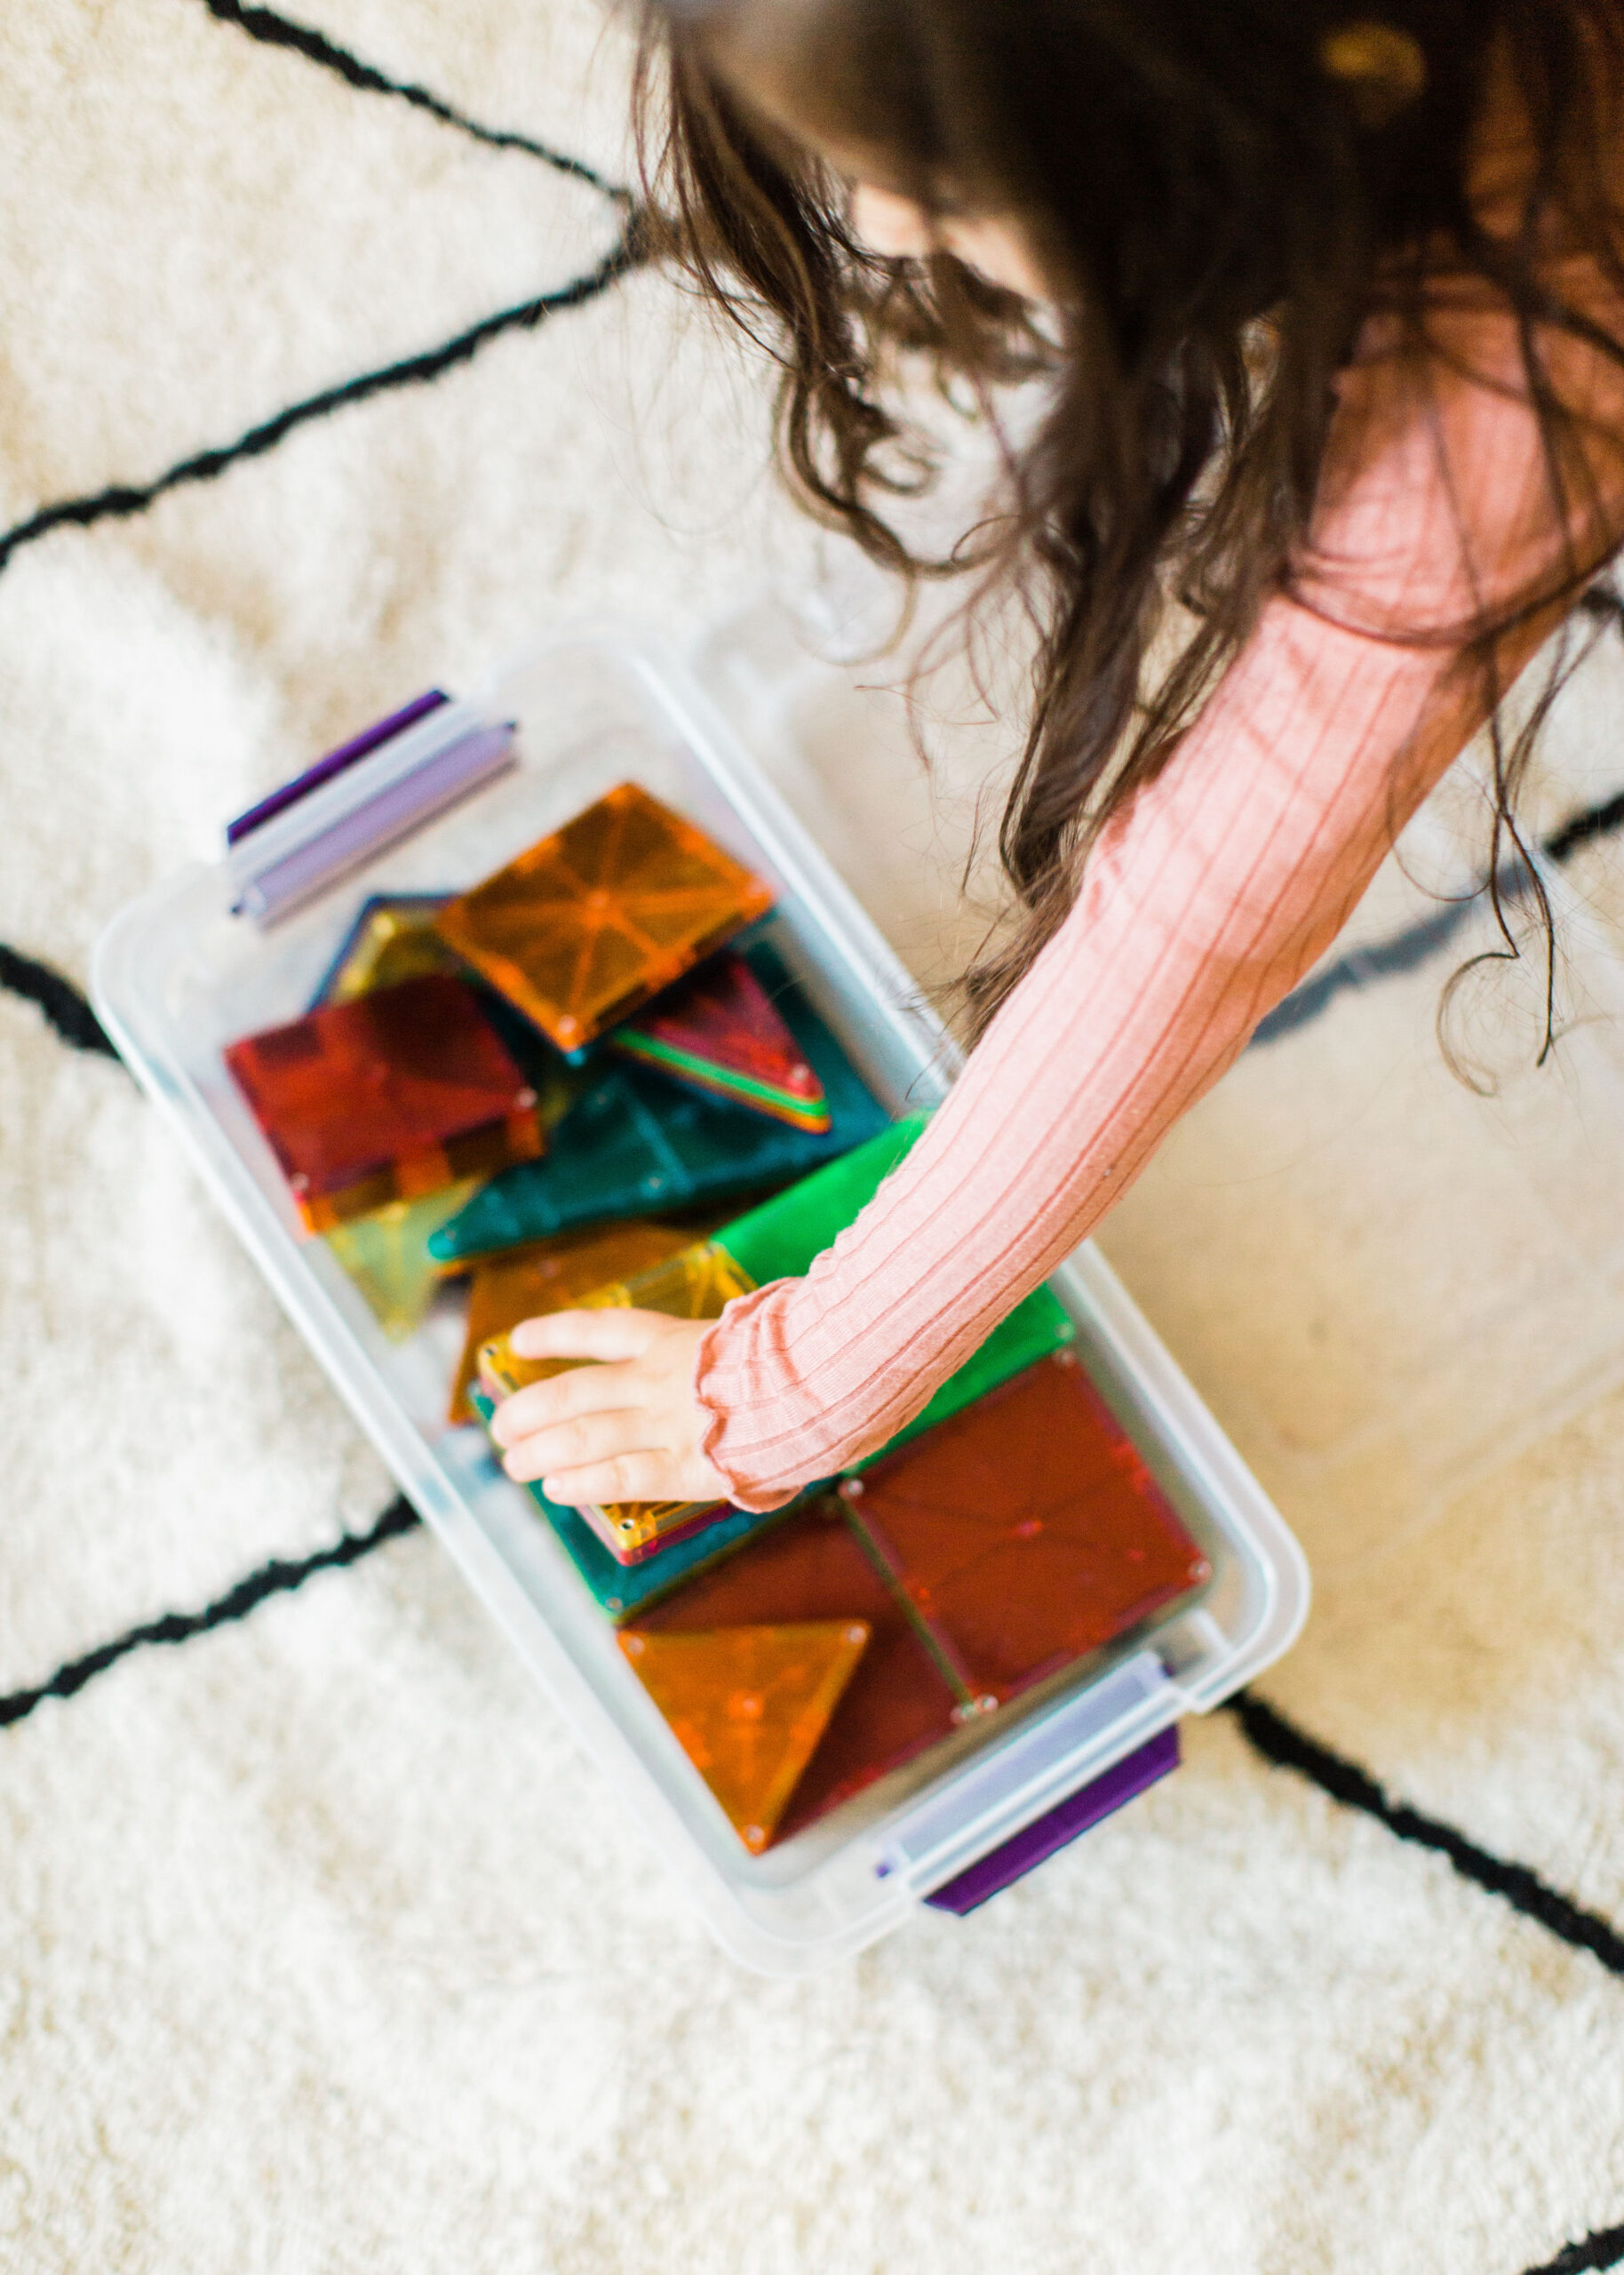 Home with your young kids? Here is a huge list of fun and educational activities to do at home with young kids, including exactly how to entertain your children during school closures, cold and flu days, Spring and Summer vacation breaks, and more. | glitterinc.com | @glitterinc // Activities for Kids at Home - Make Lego or Magna-Tiles Projects